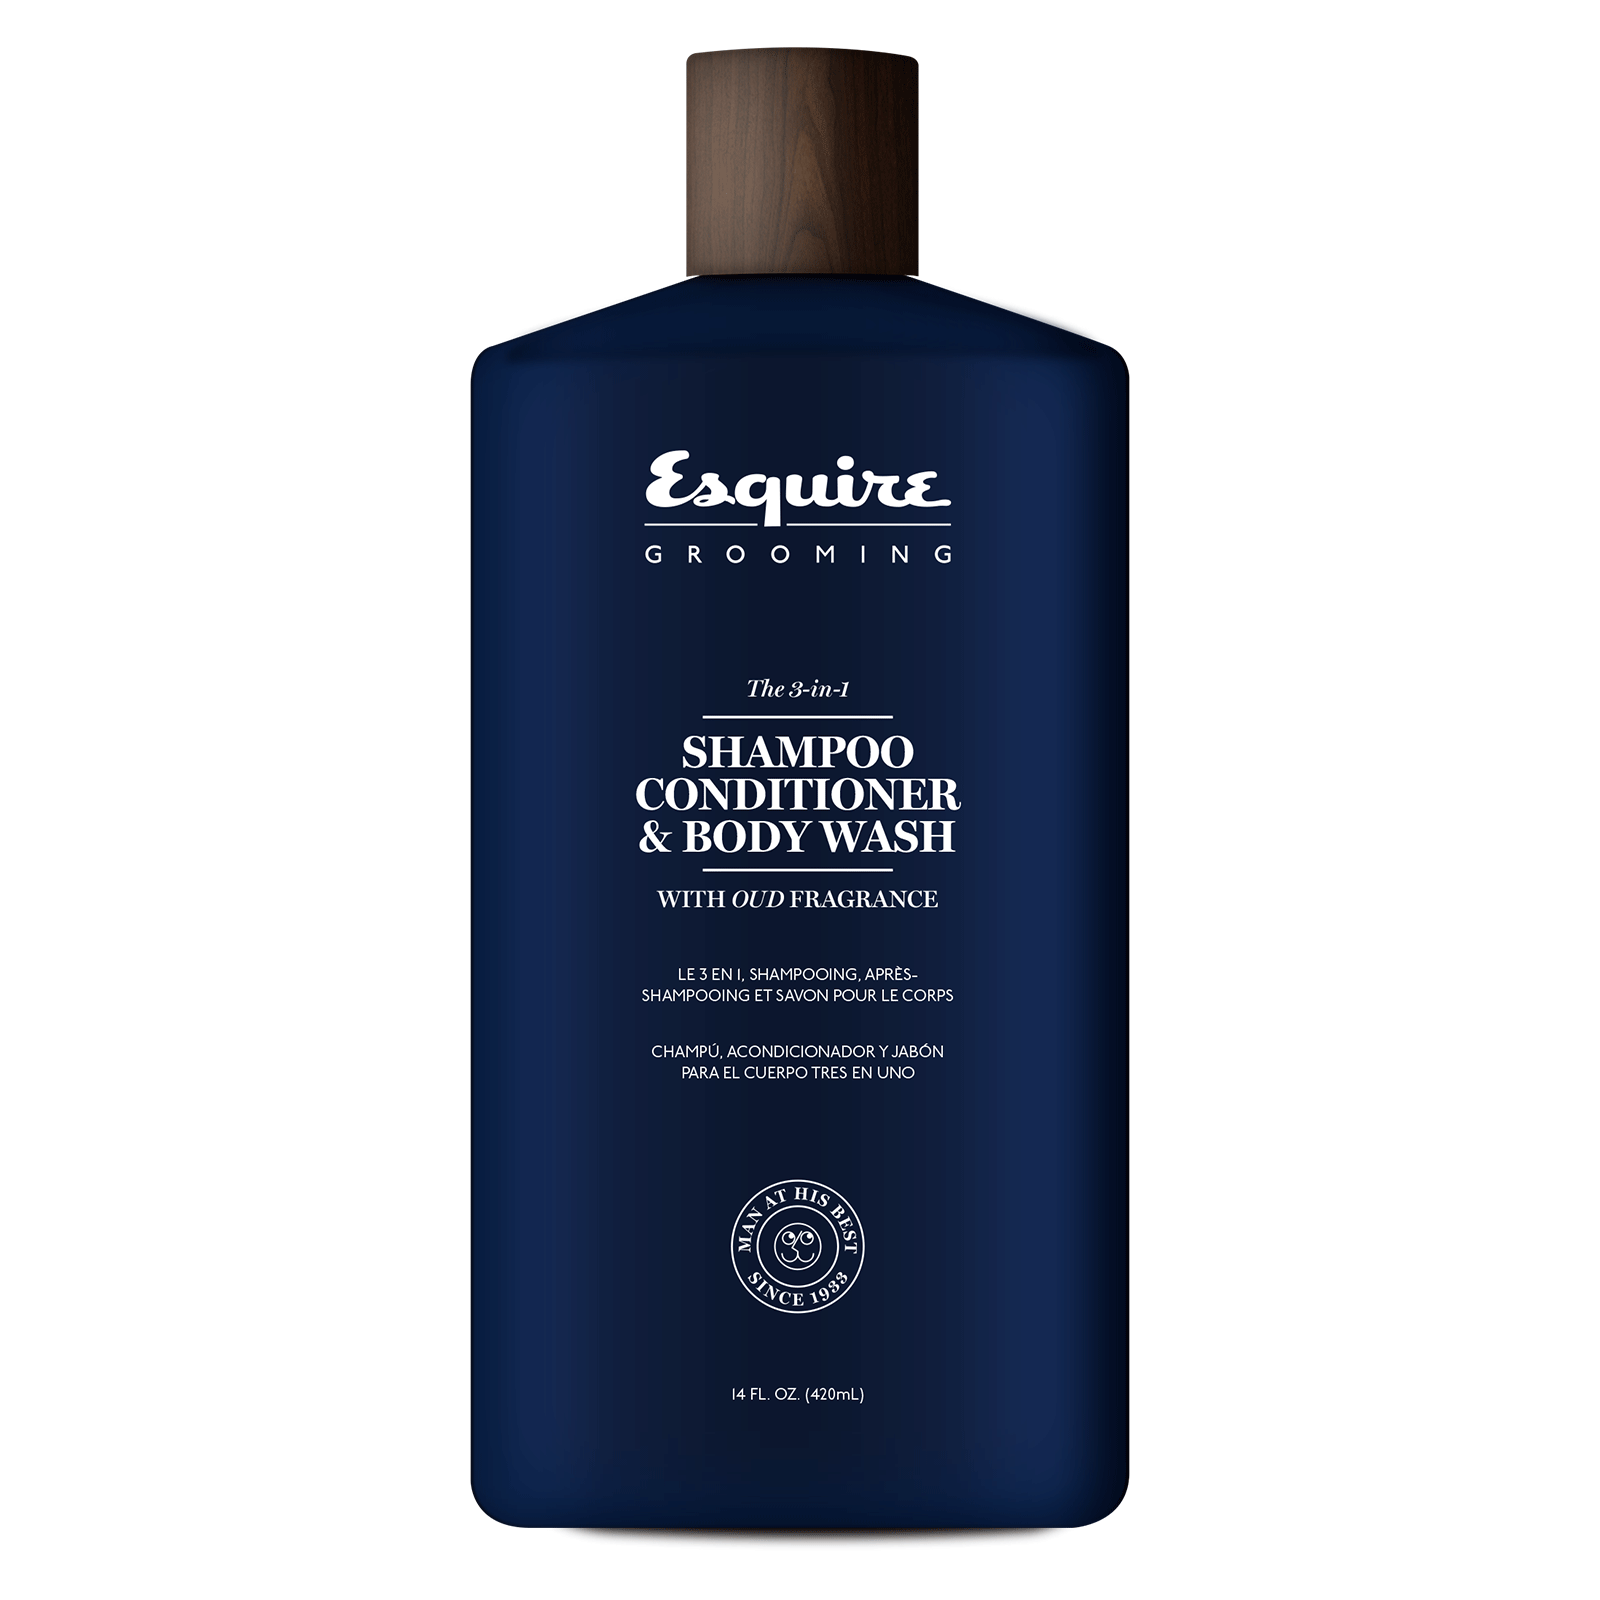 ef90da8e527b Esquire 3-in-1 Shampoo Conditioner & Body Wash - Farouk | CosmoProf